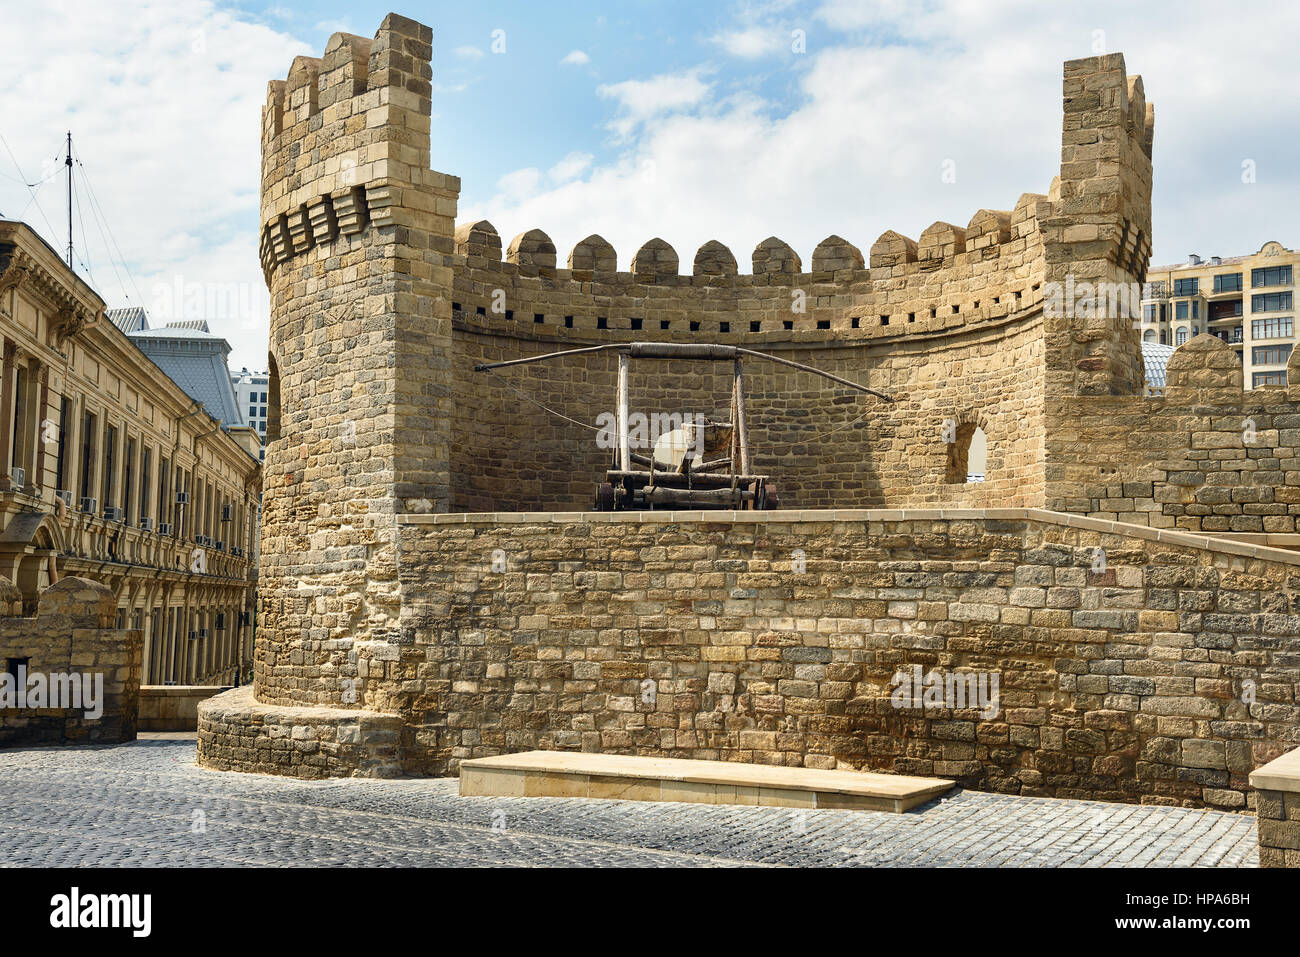 Baku, Azerbaijan - September 10, 2016: Ancient medieval catapult at tower of fortress in Old City, Icheri Shehe - Stock Image